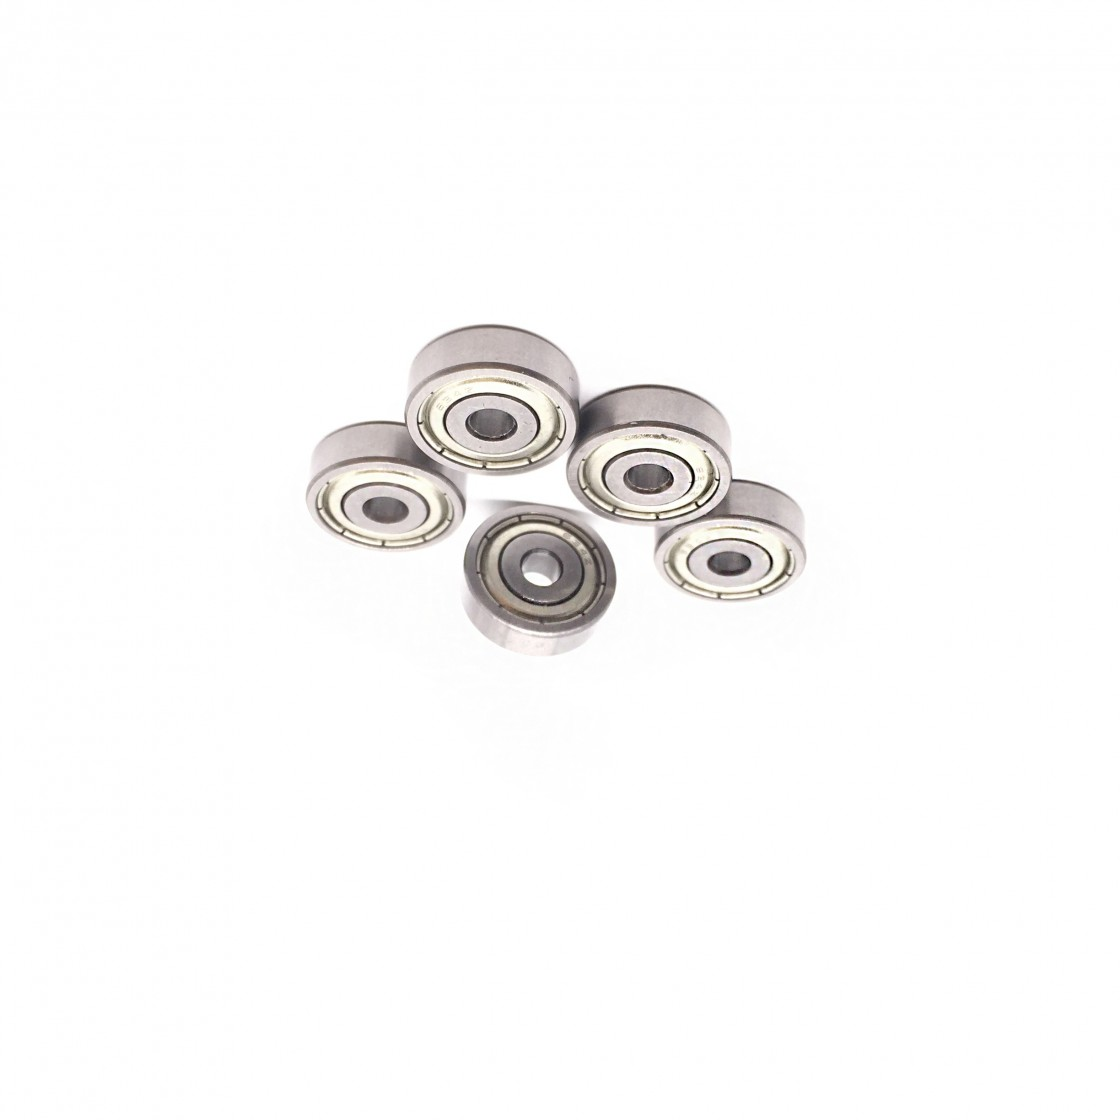 Made in China High Precision SSUCF Stainless Steel Pillow Block Bearing SSUCF205 Shaft Size 25 mm